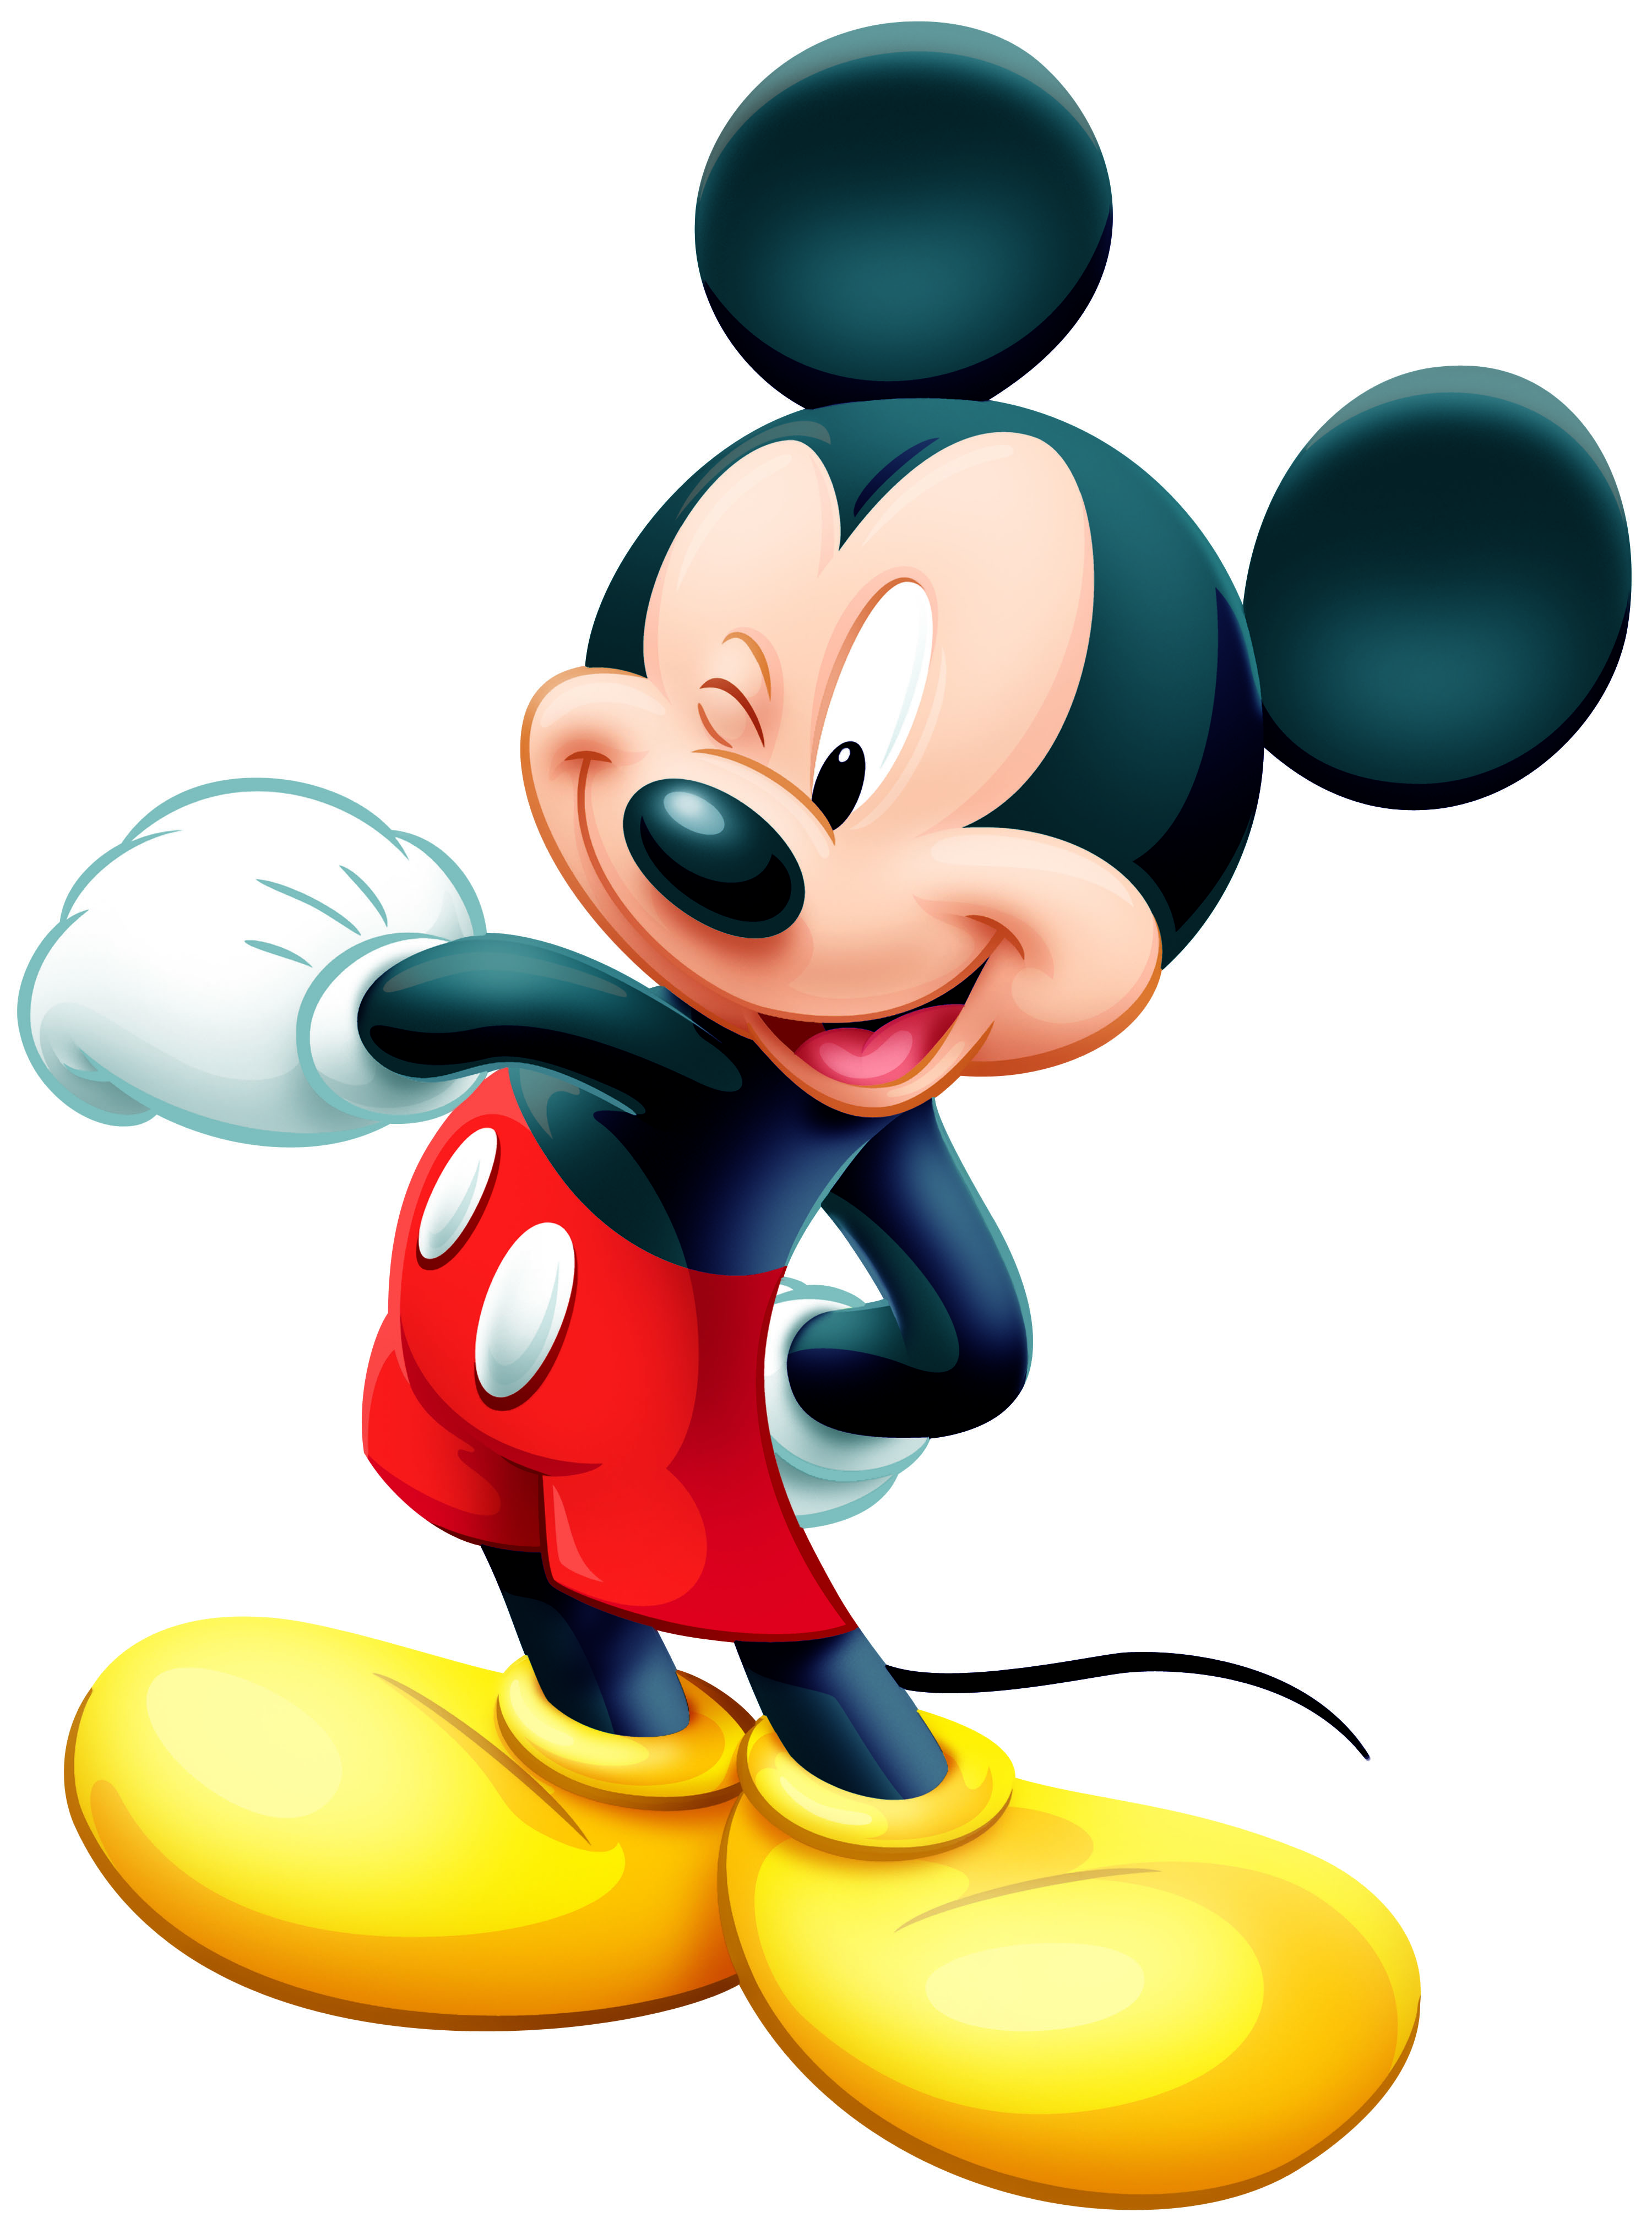 mickey-mouse-image-2